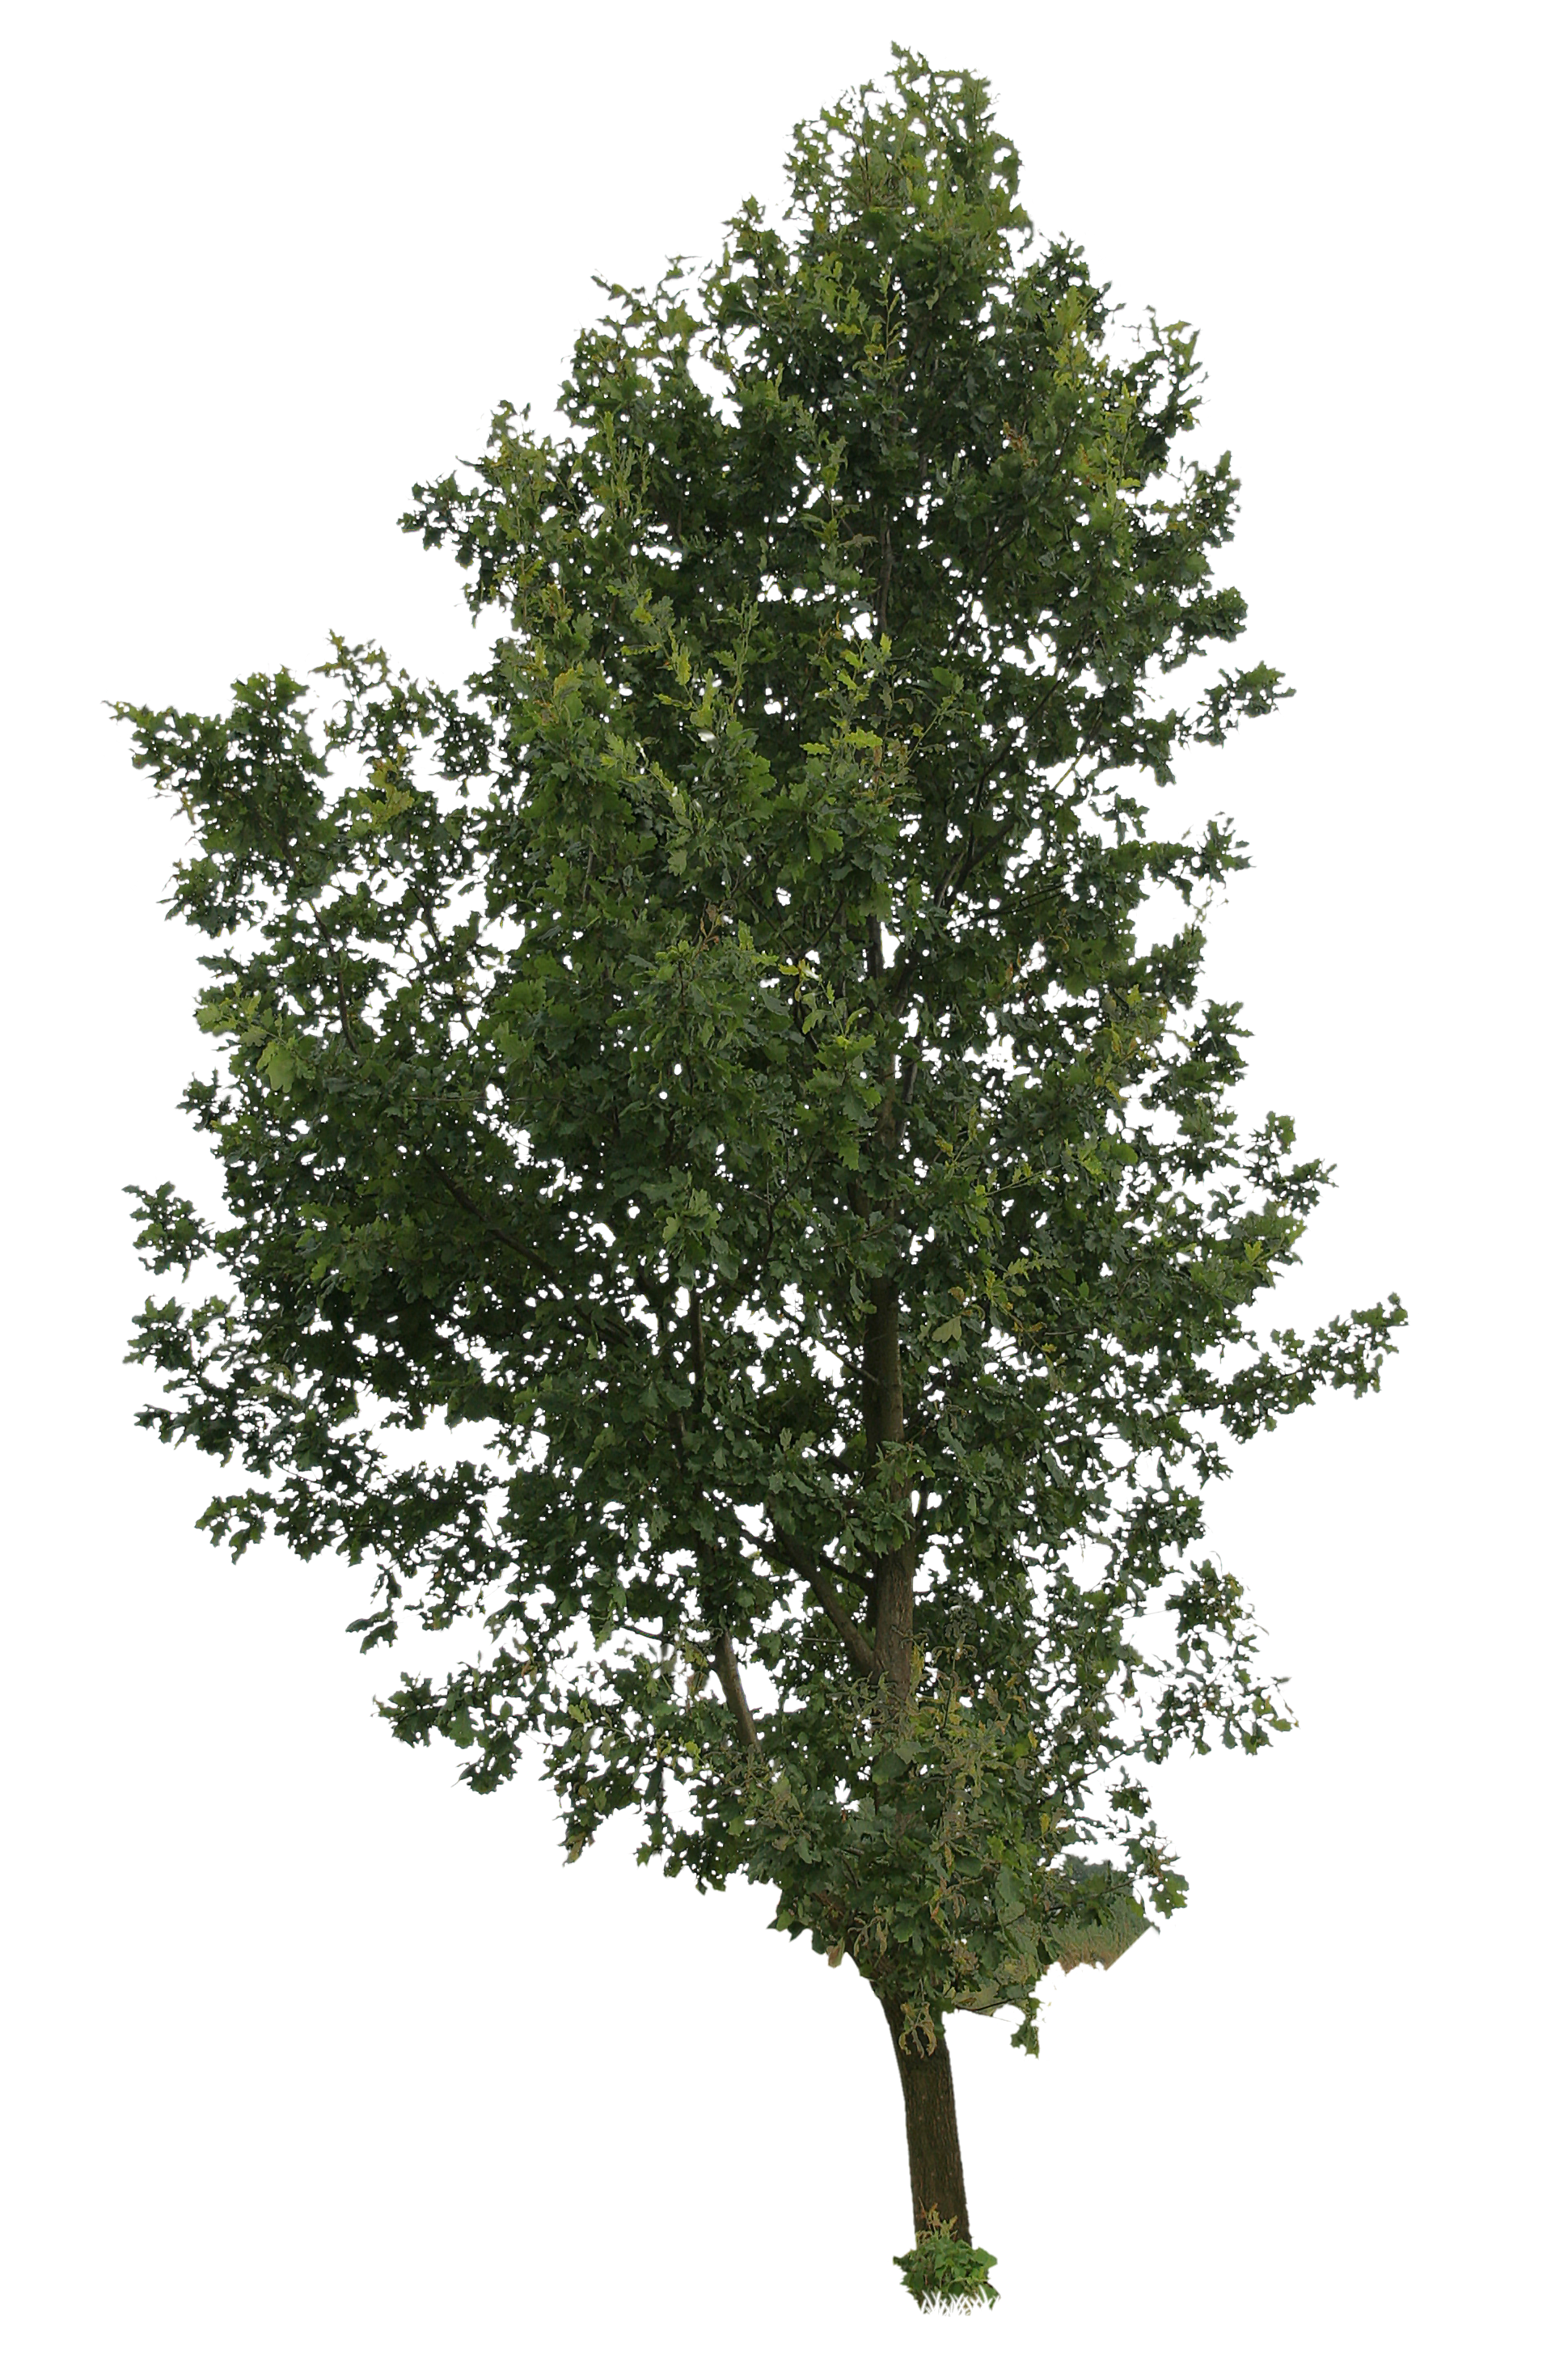 Trees in png format. High tree free cut